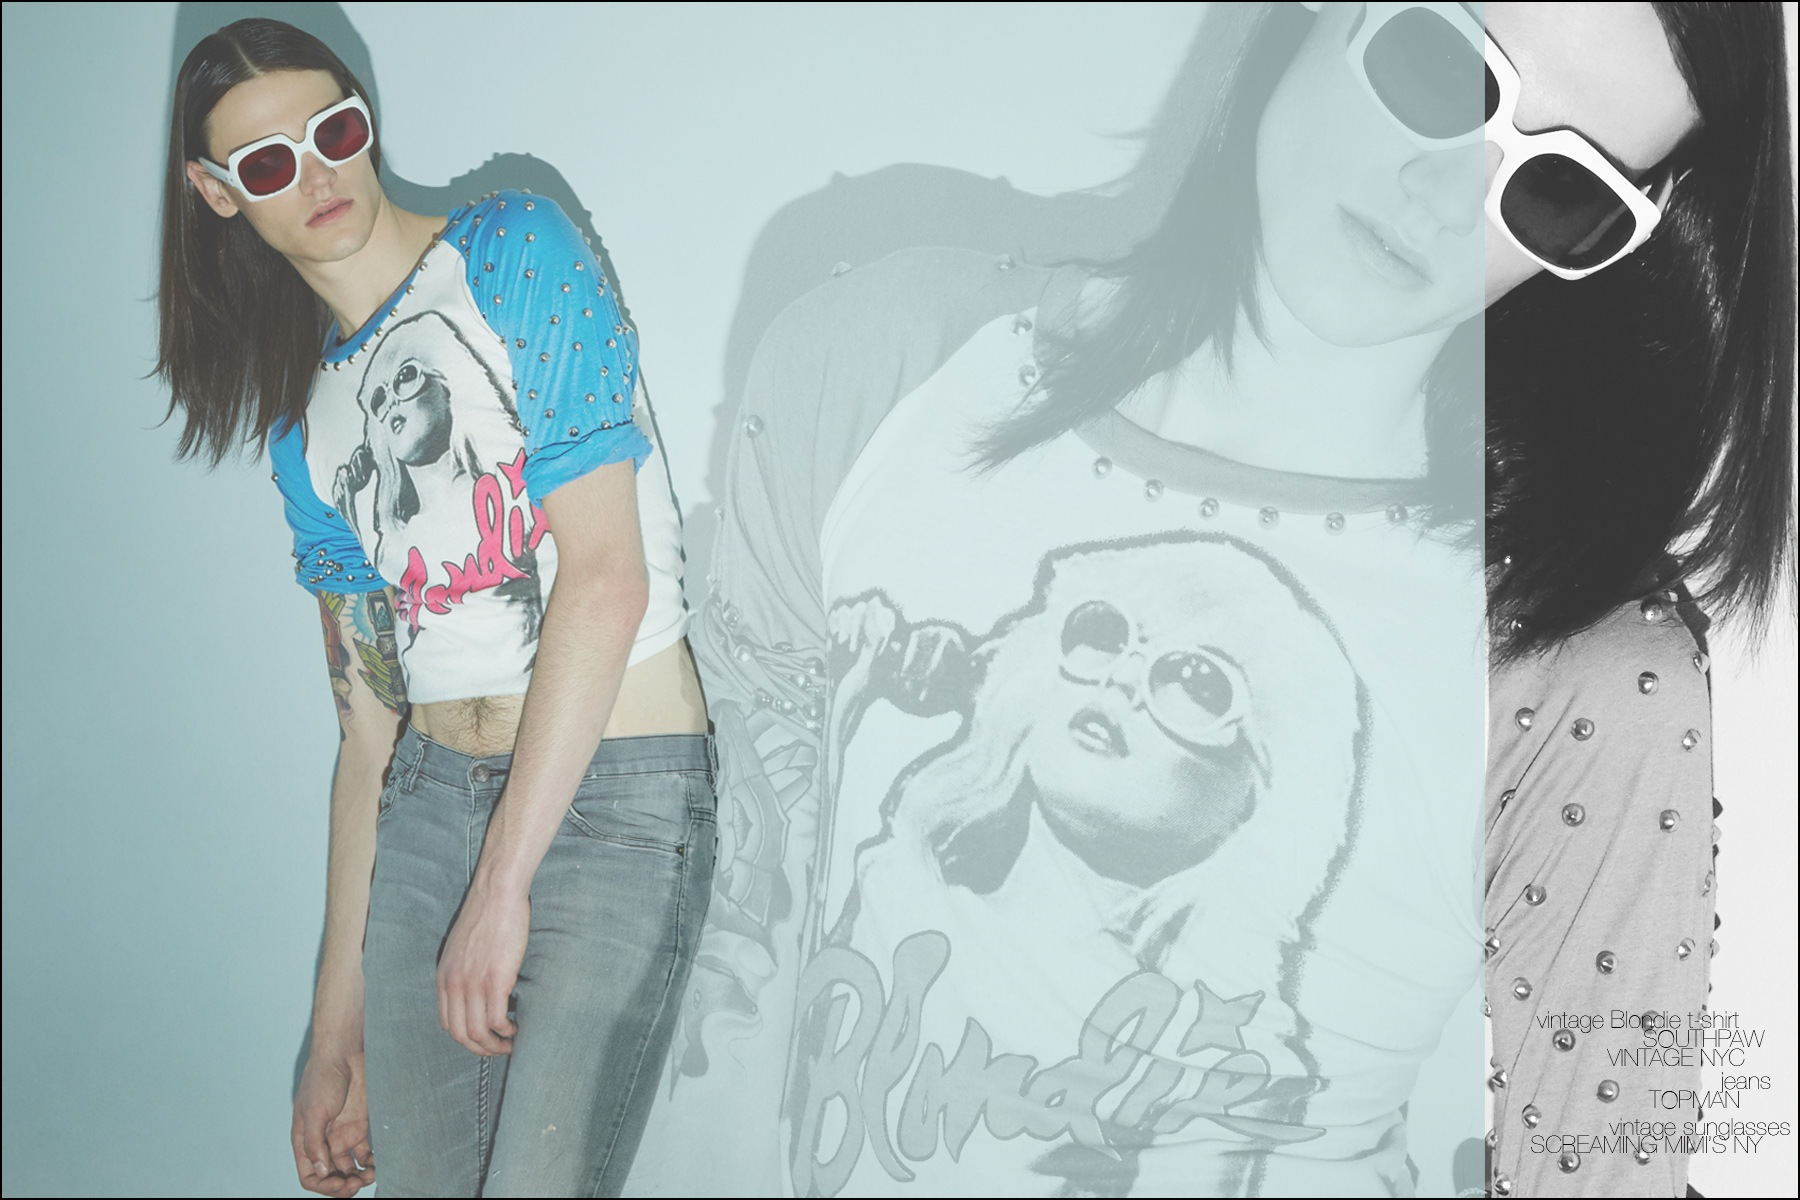 Model Gustavo Sanches photographed in a vintage Blondie rock shirt for Ponyboy magazine men's editorial. Photography by Alexander Thompson for Ponyboy magazine NY.